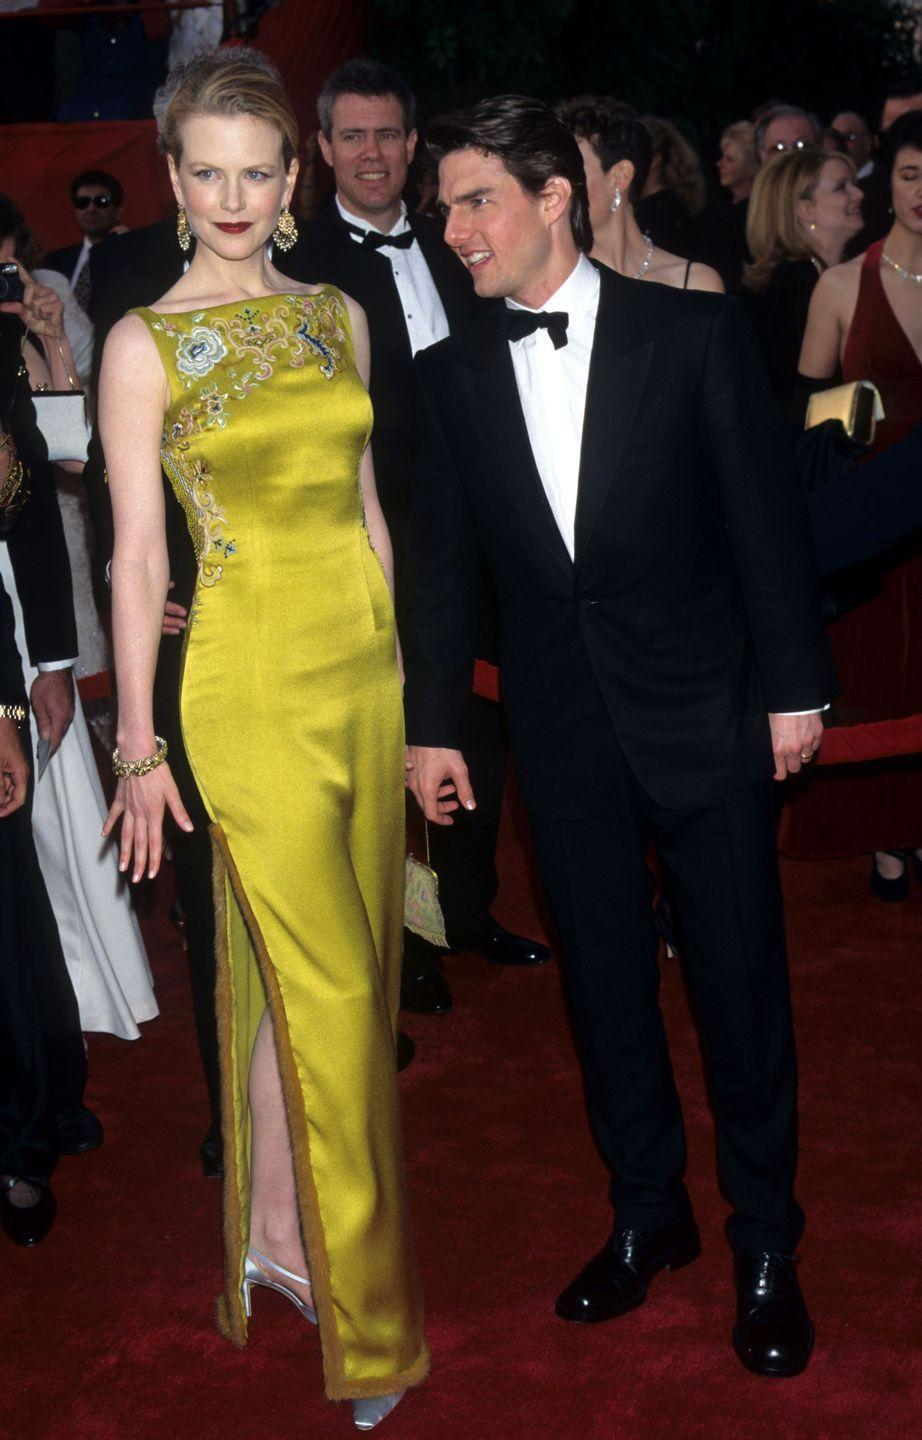 <p>Leave it to Nicole Kidman to upstage then husband Tom Cruise in a silky chartreuse John Galliano Dior dress paired with an adorable mini bag. So on trend! </p>